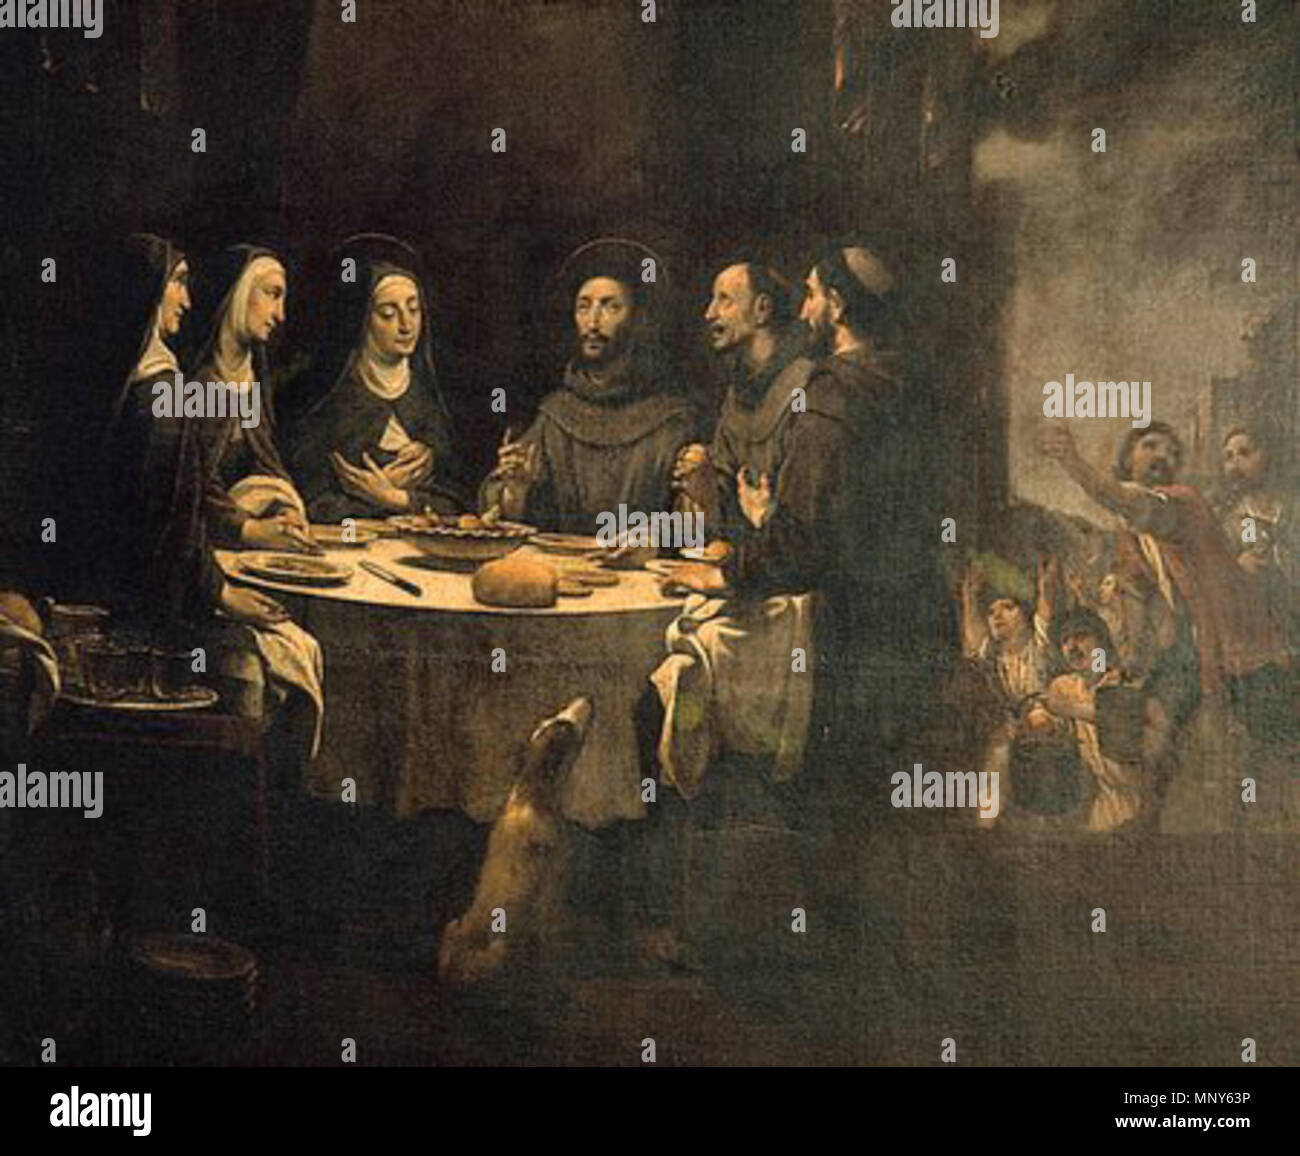 Saint Francis and Saint Clare at Supper in the Convent of Saint Damian   between 1724 and 1733.   1236 ViladomatFrancescSopar - Stock Image